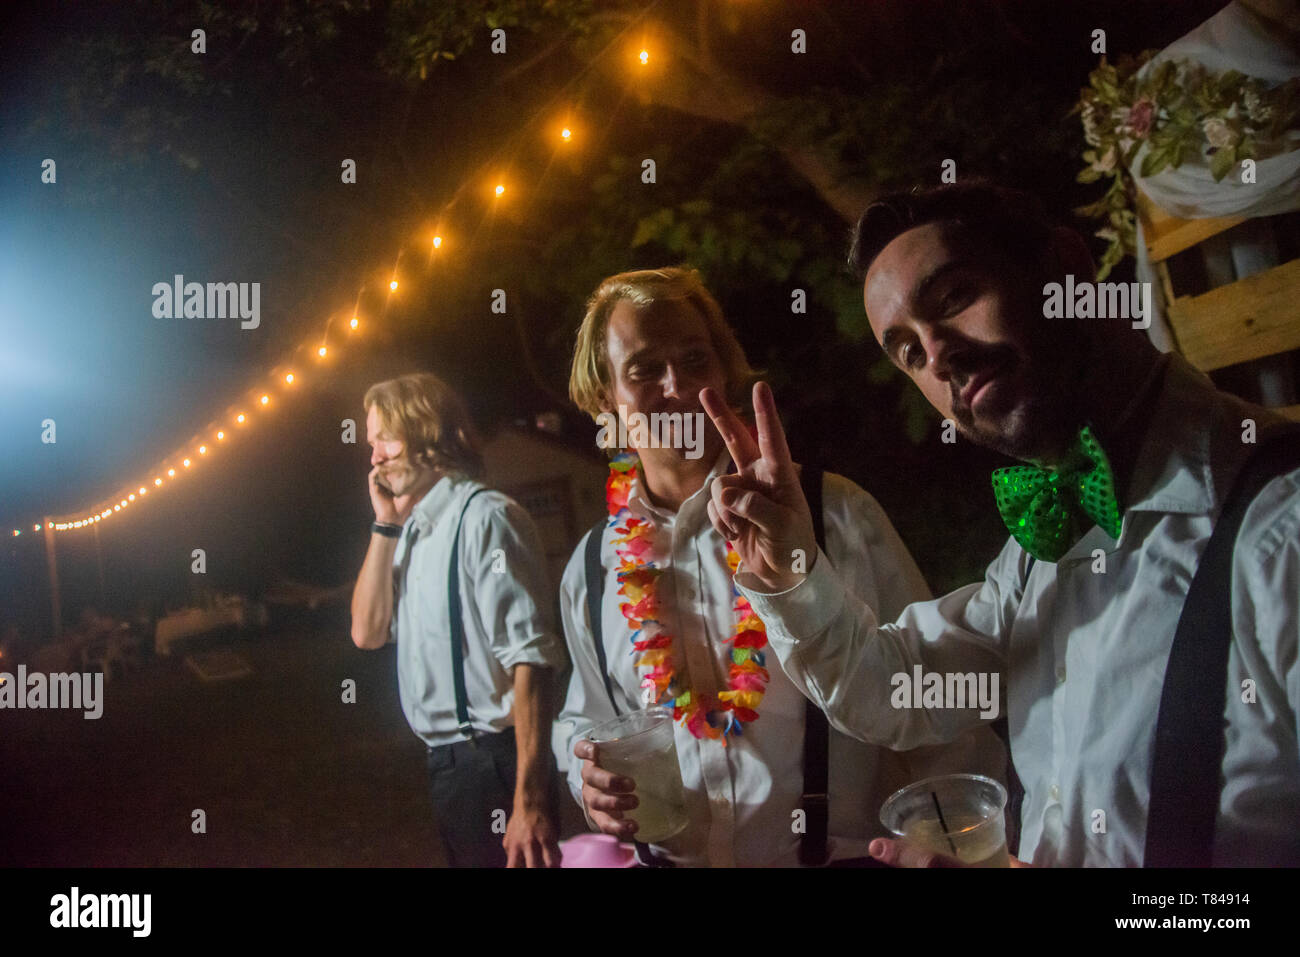 Young Men Making Peace Sign At Outdoor Wedding Reception At